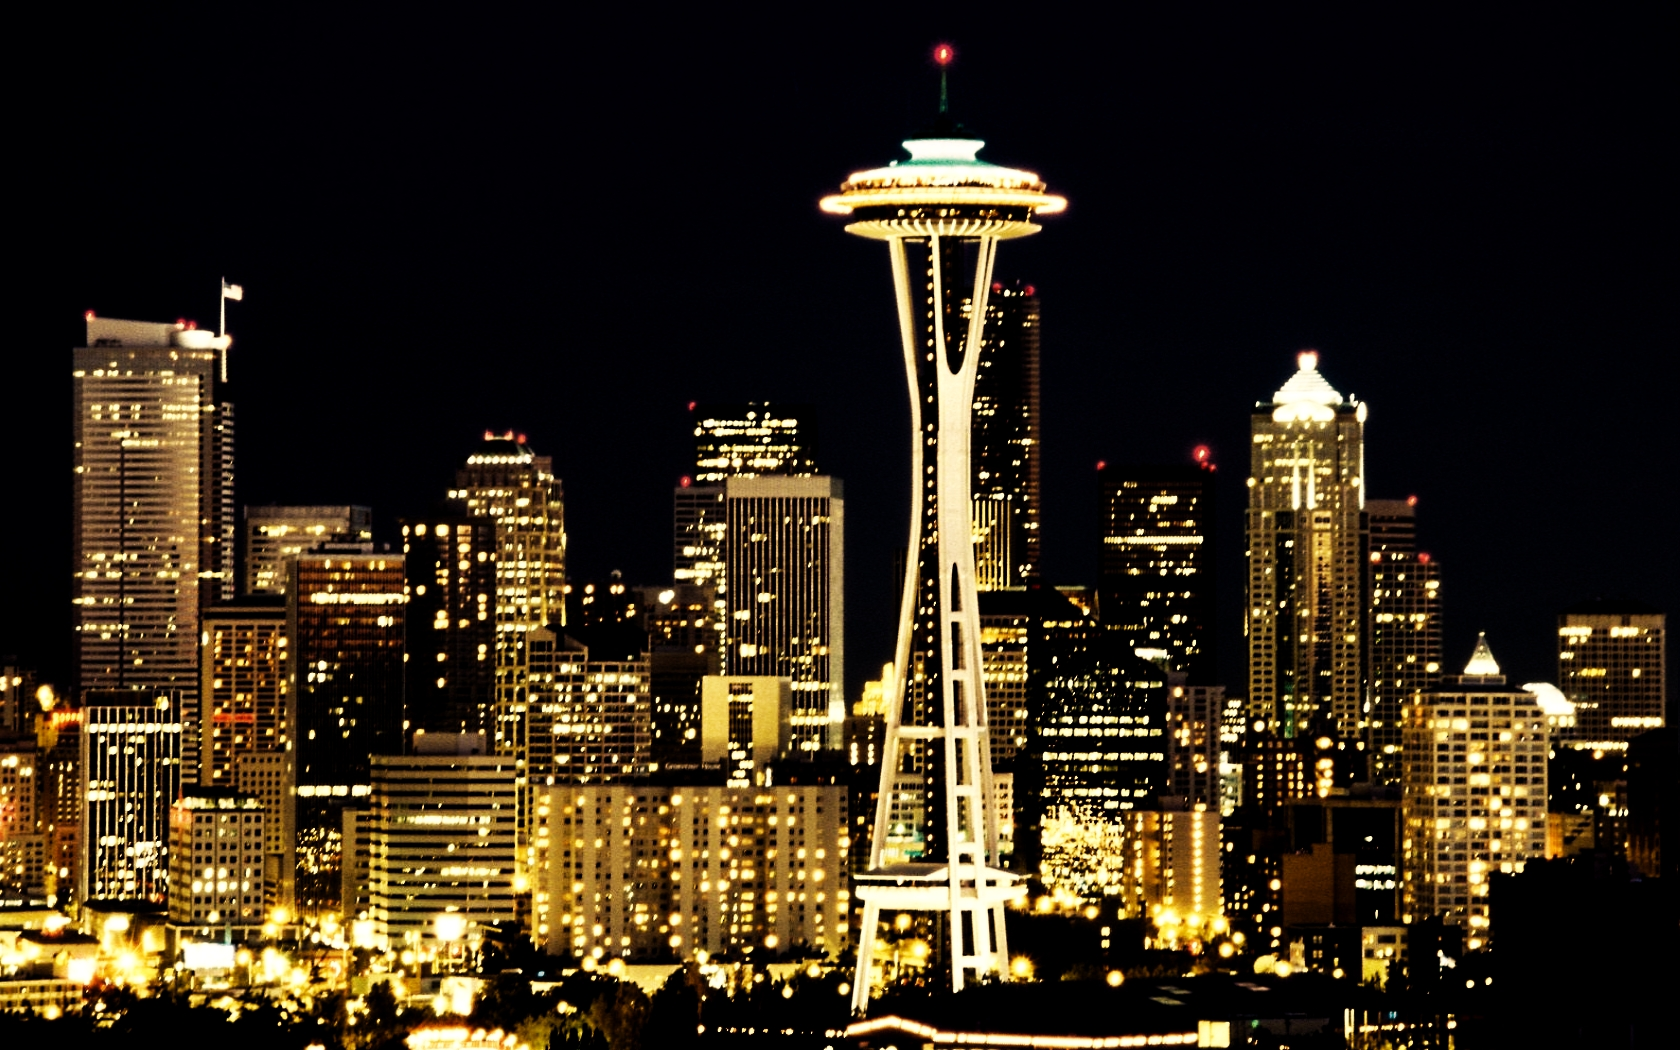 Skyline Seattle Wallpaper 1680x1050 Skyline Seattle City Lights 1680x1050